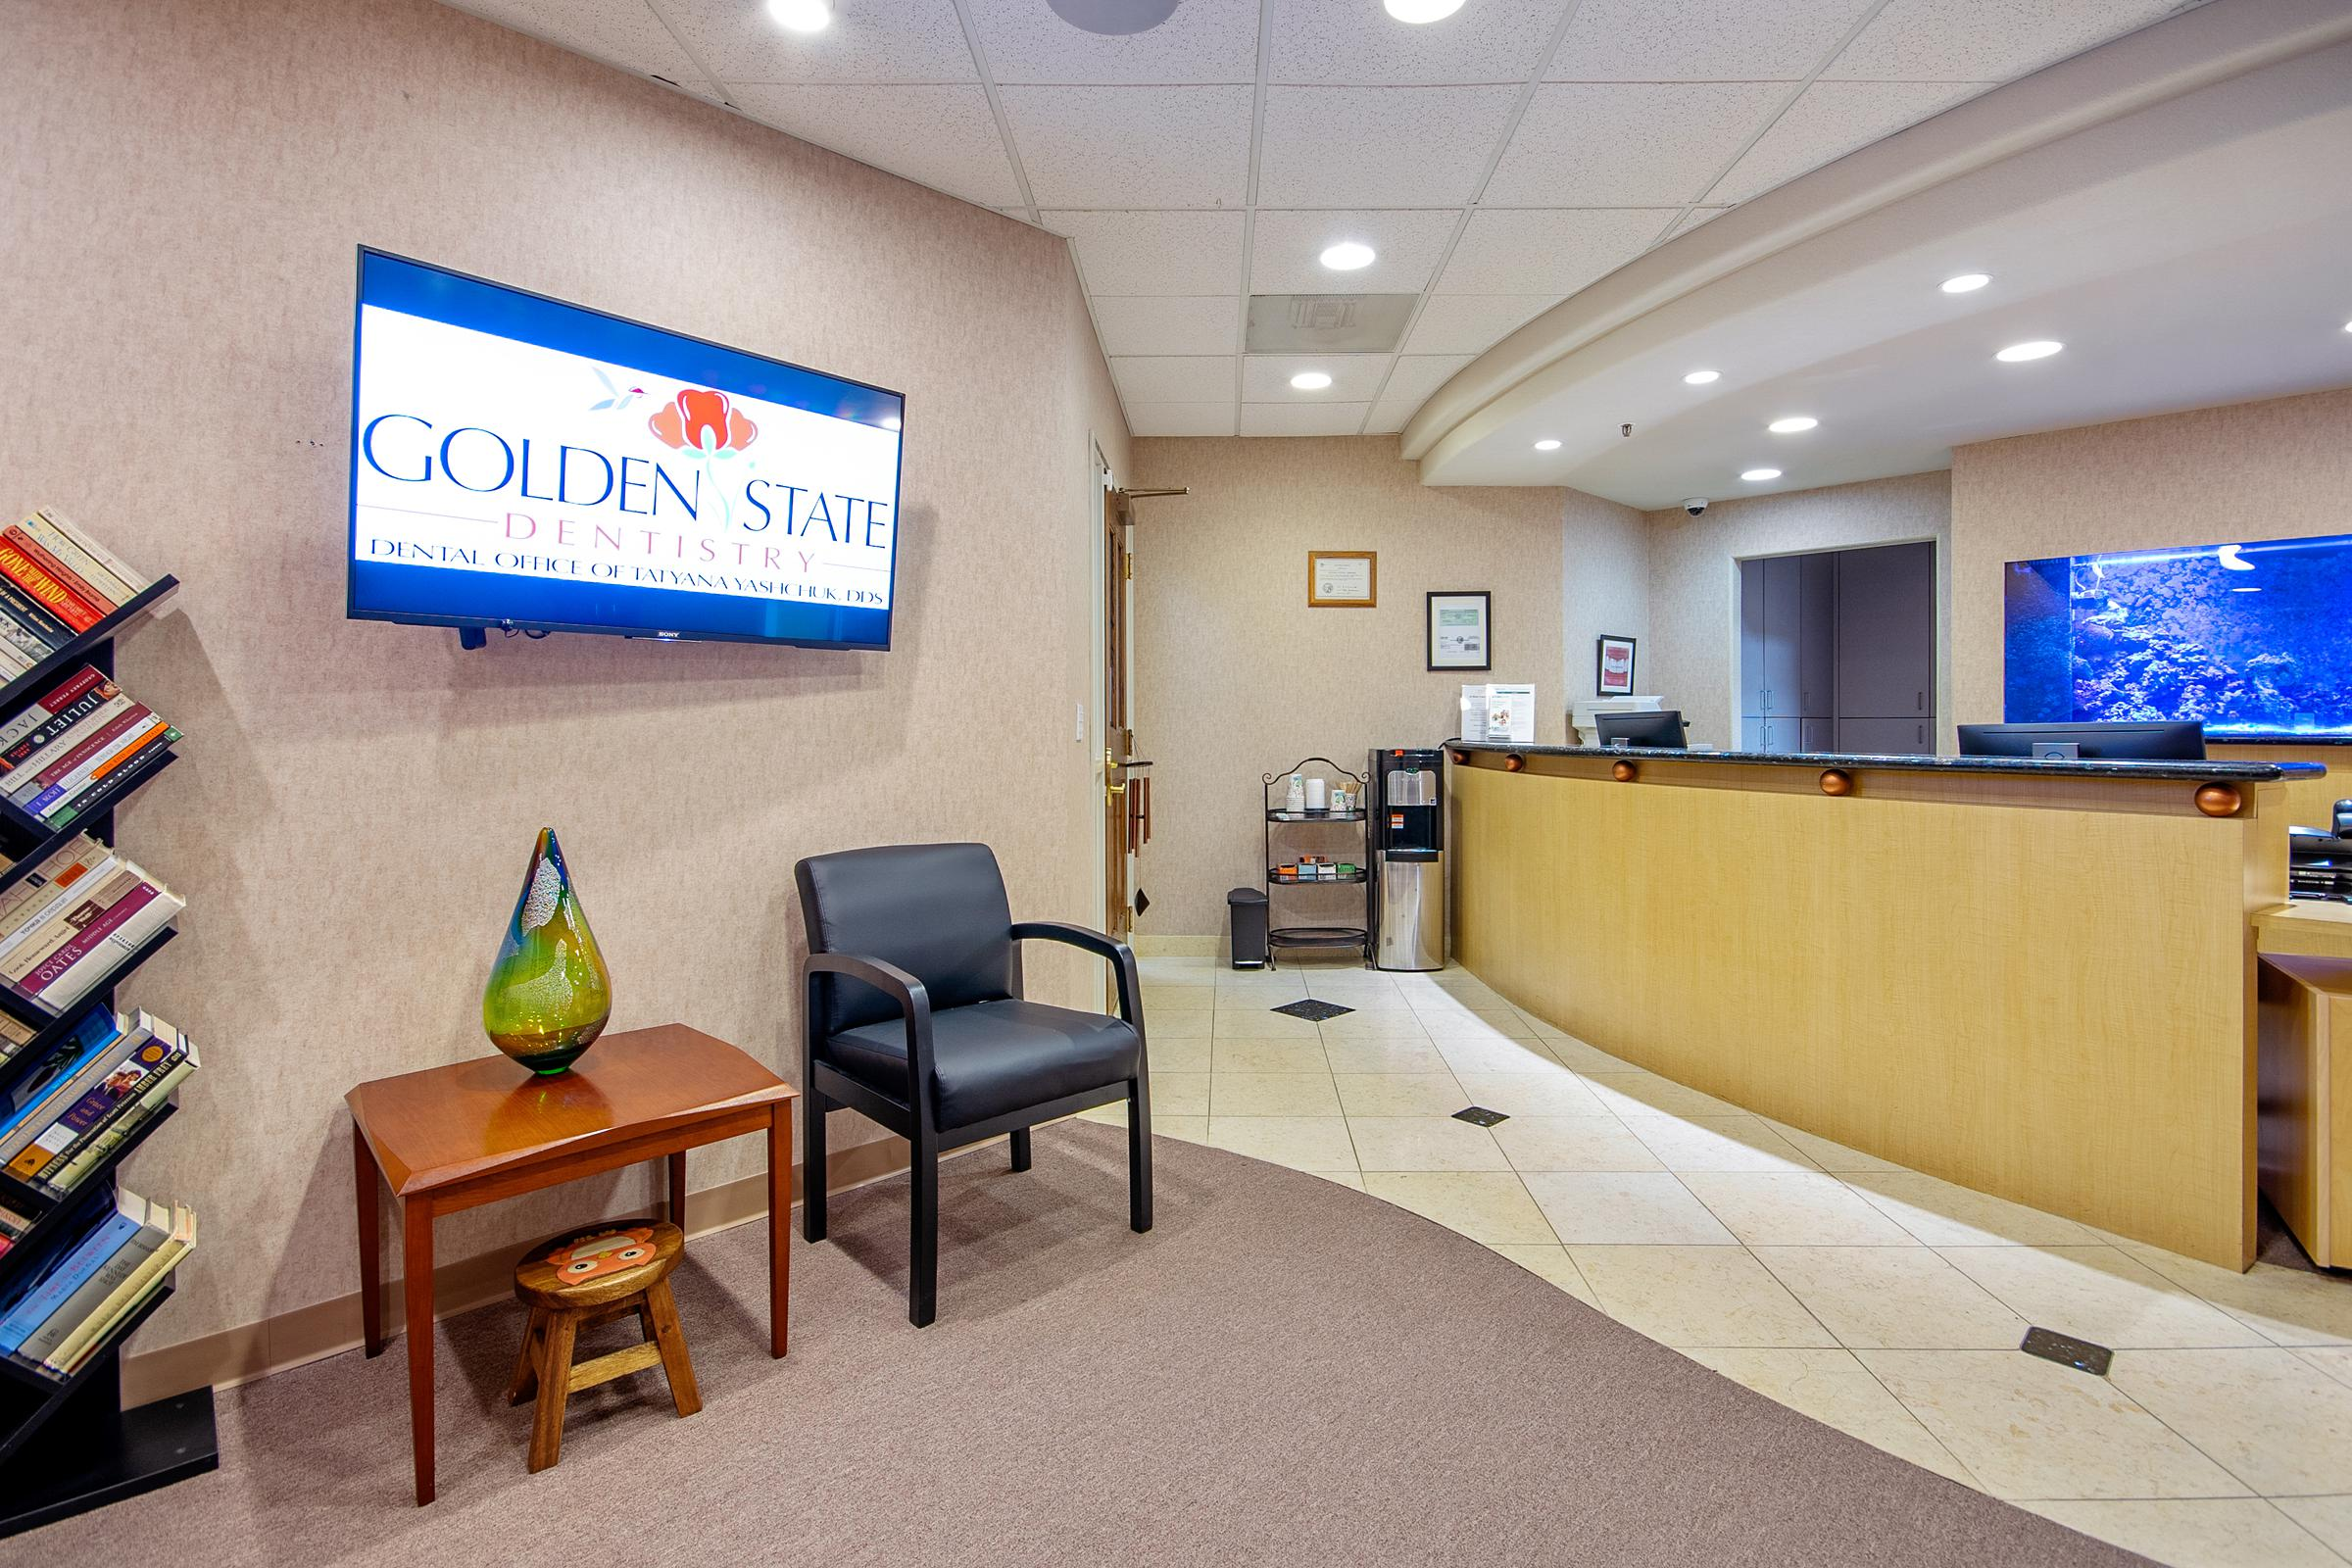 Golden-State-Dentistry-Office-Tour-Reception